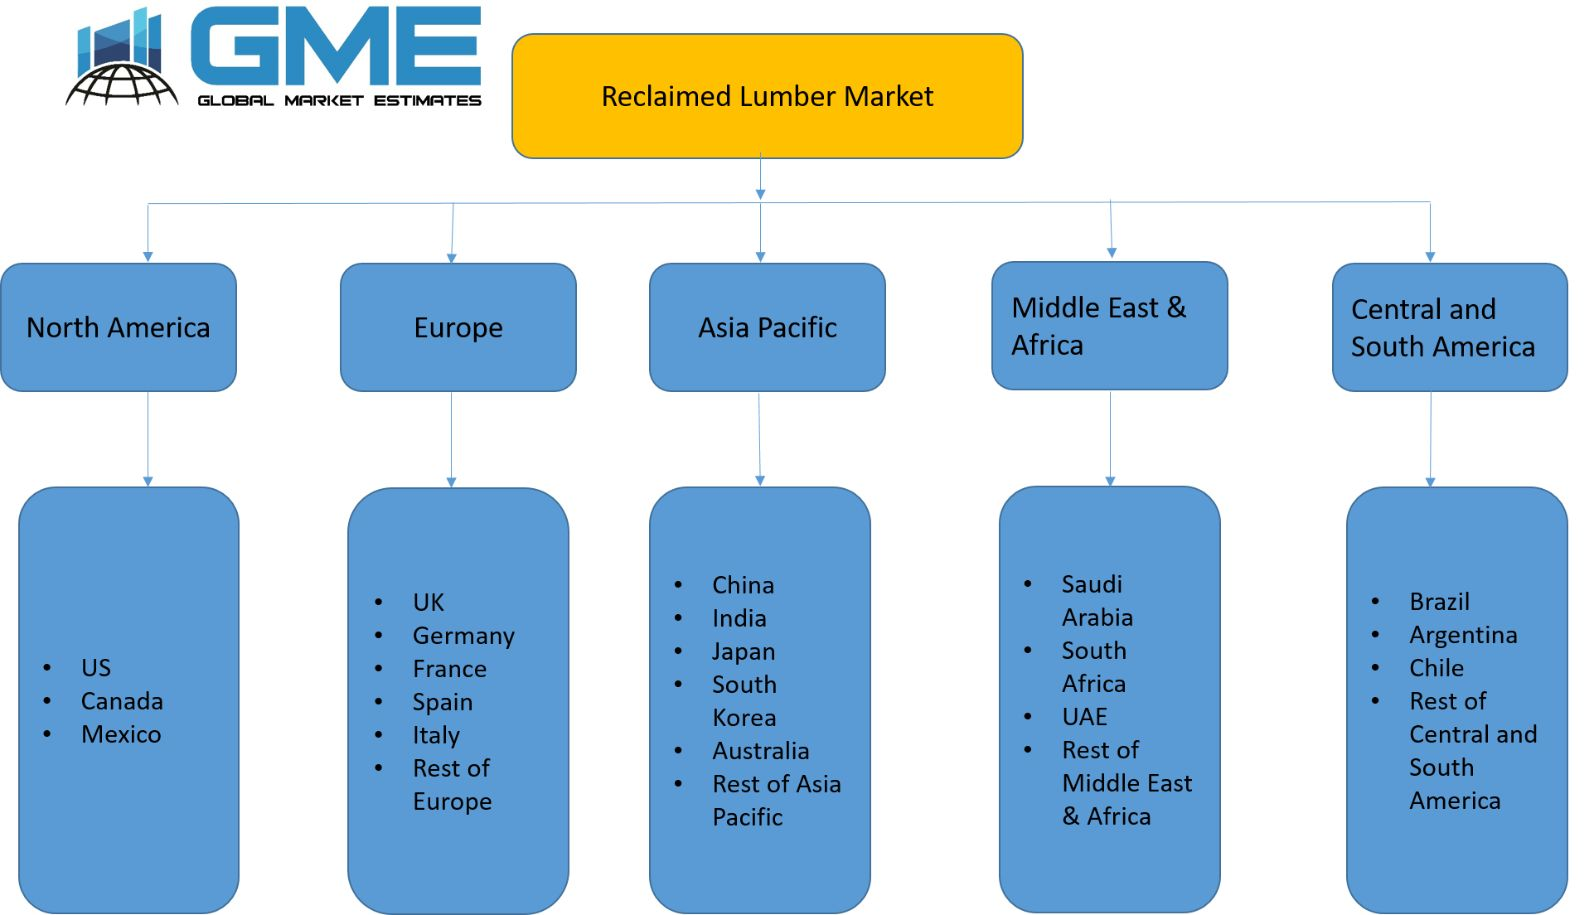 Reclaimed Lumber Market - Regional Analysis